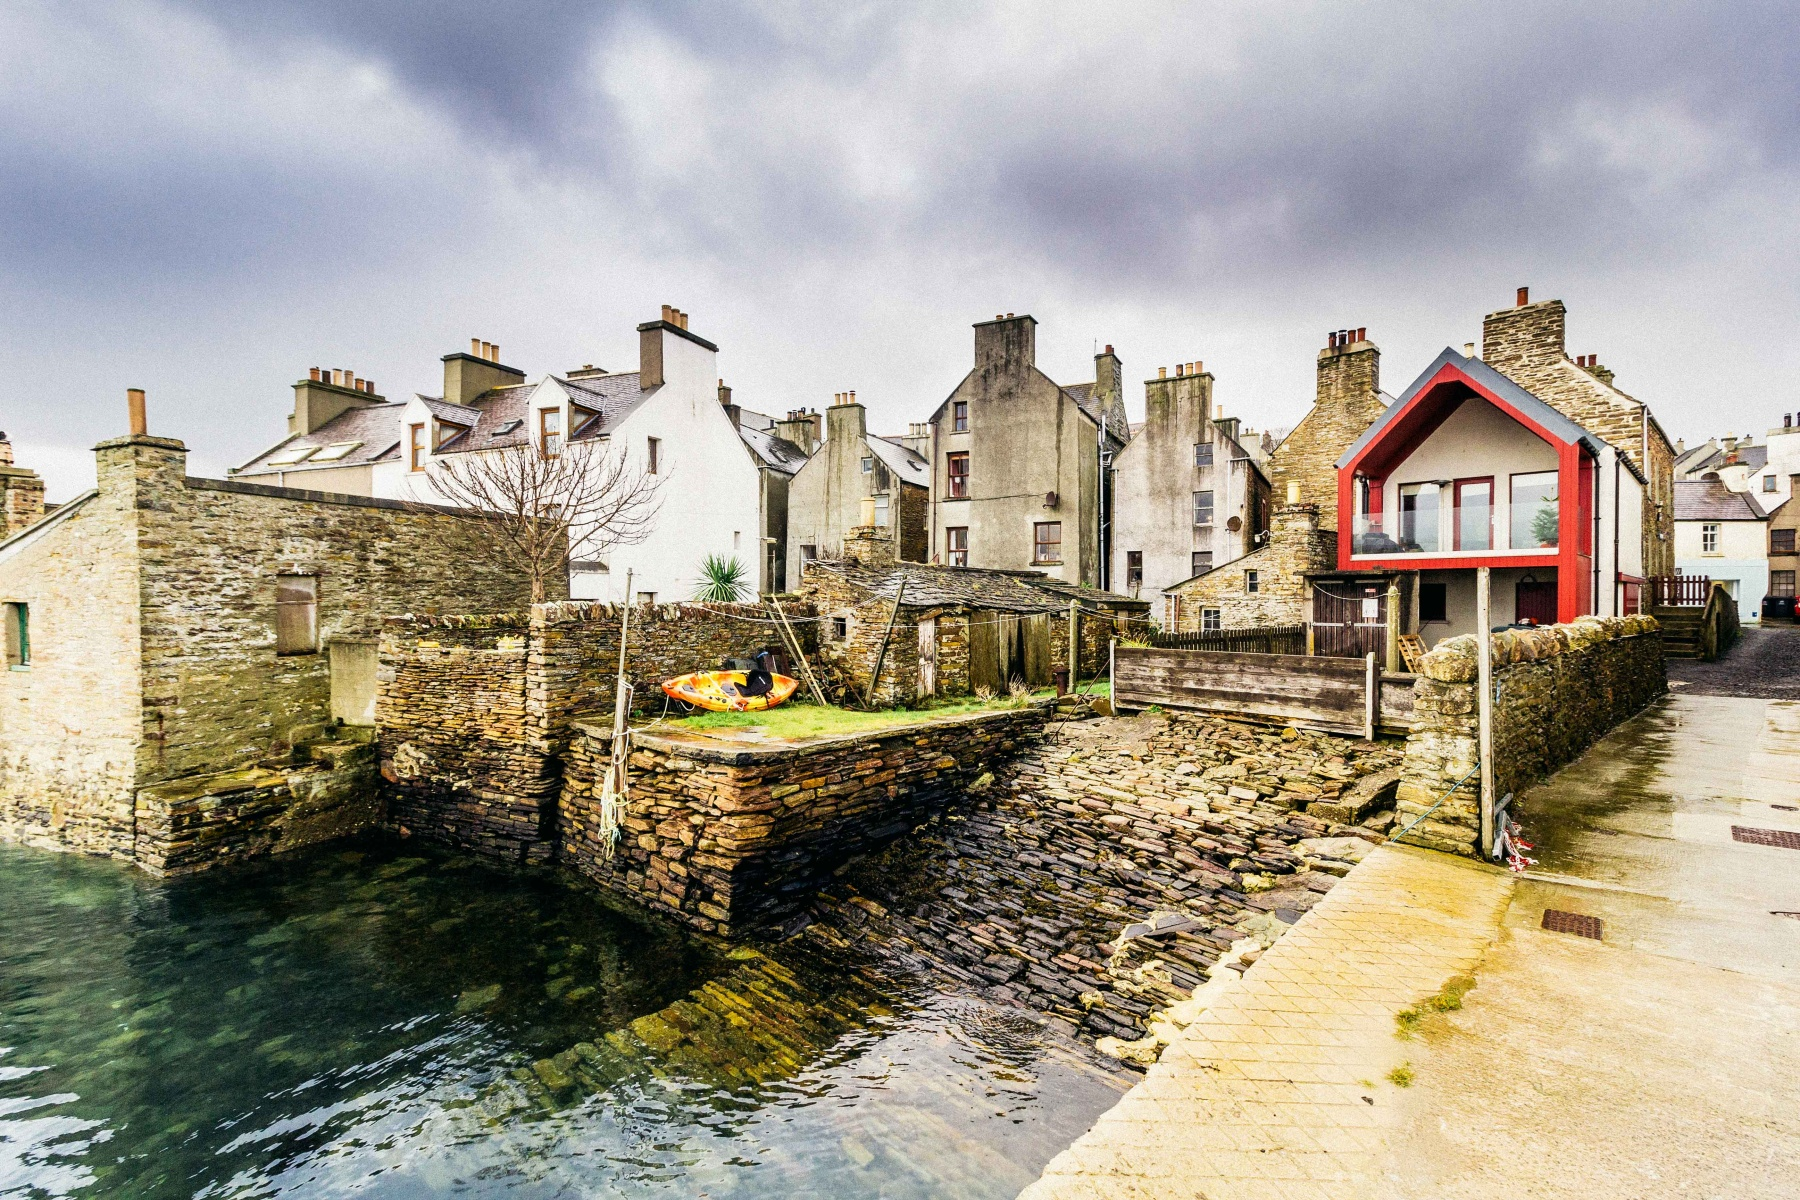 Houses facing on to the Harbour in the town of Stromness, Orkney